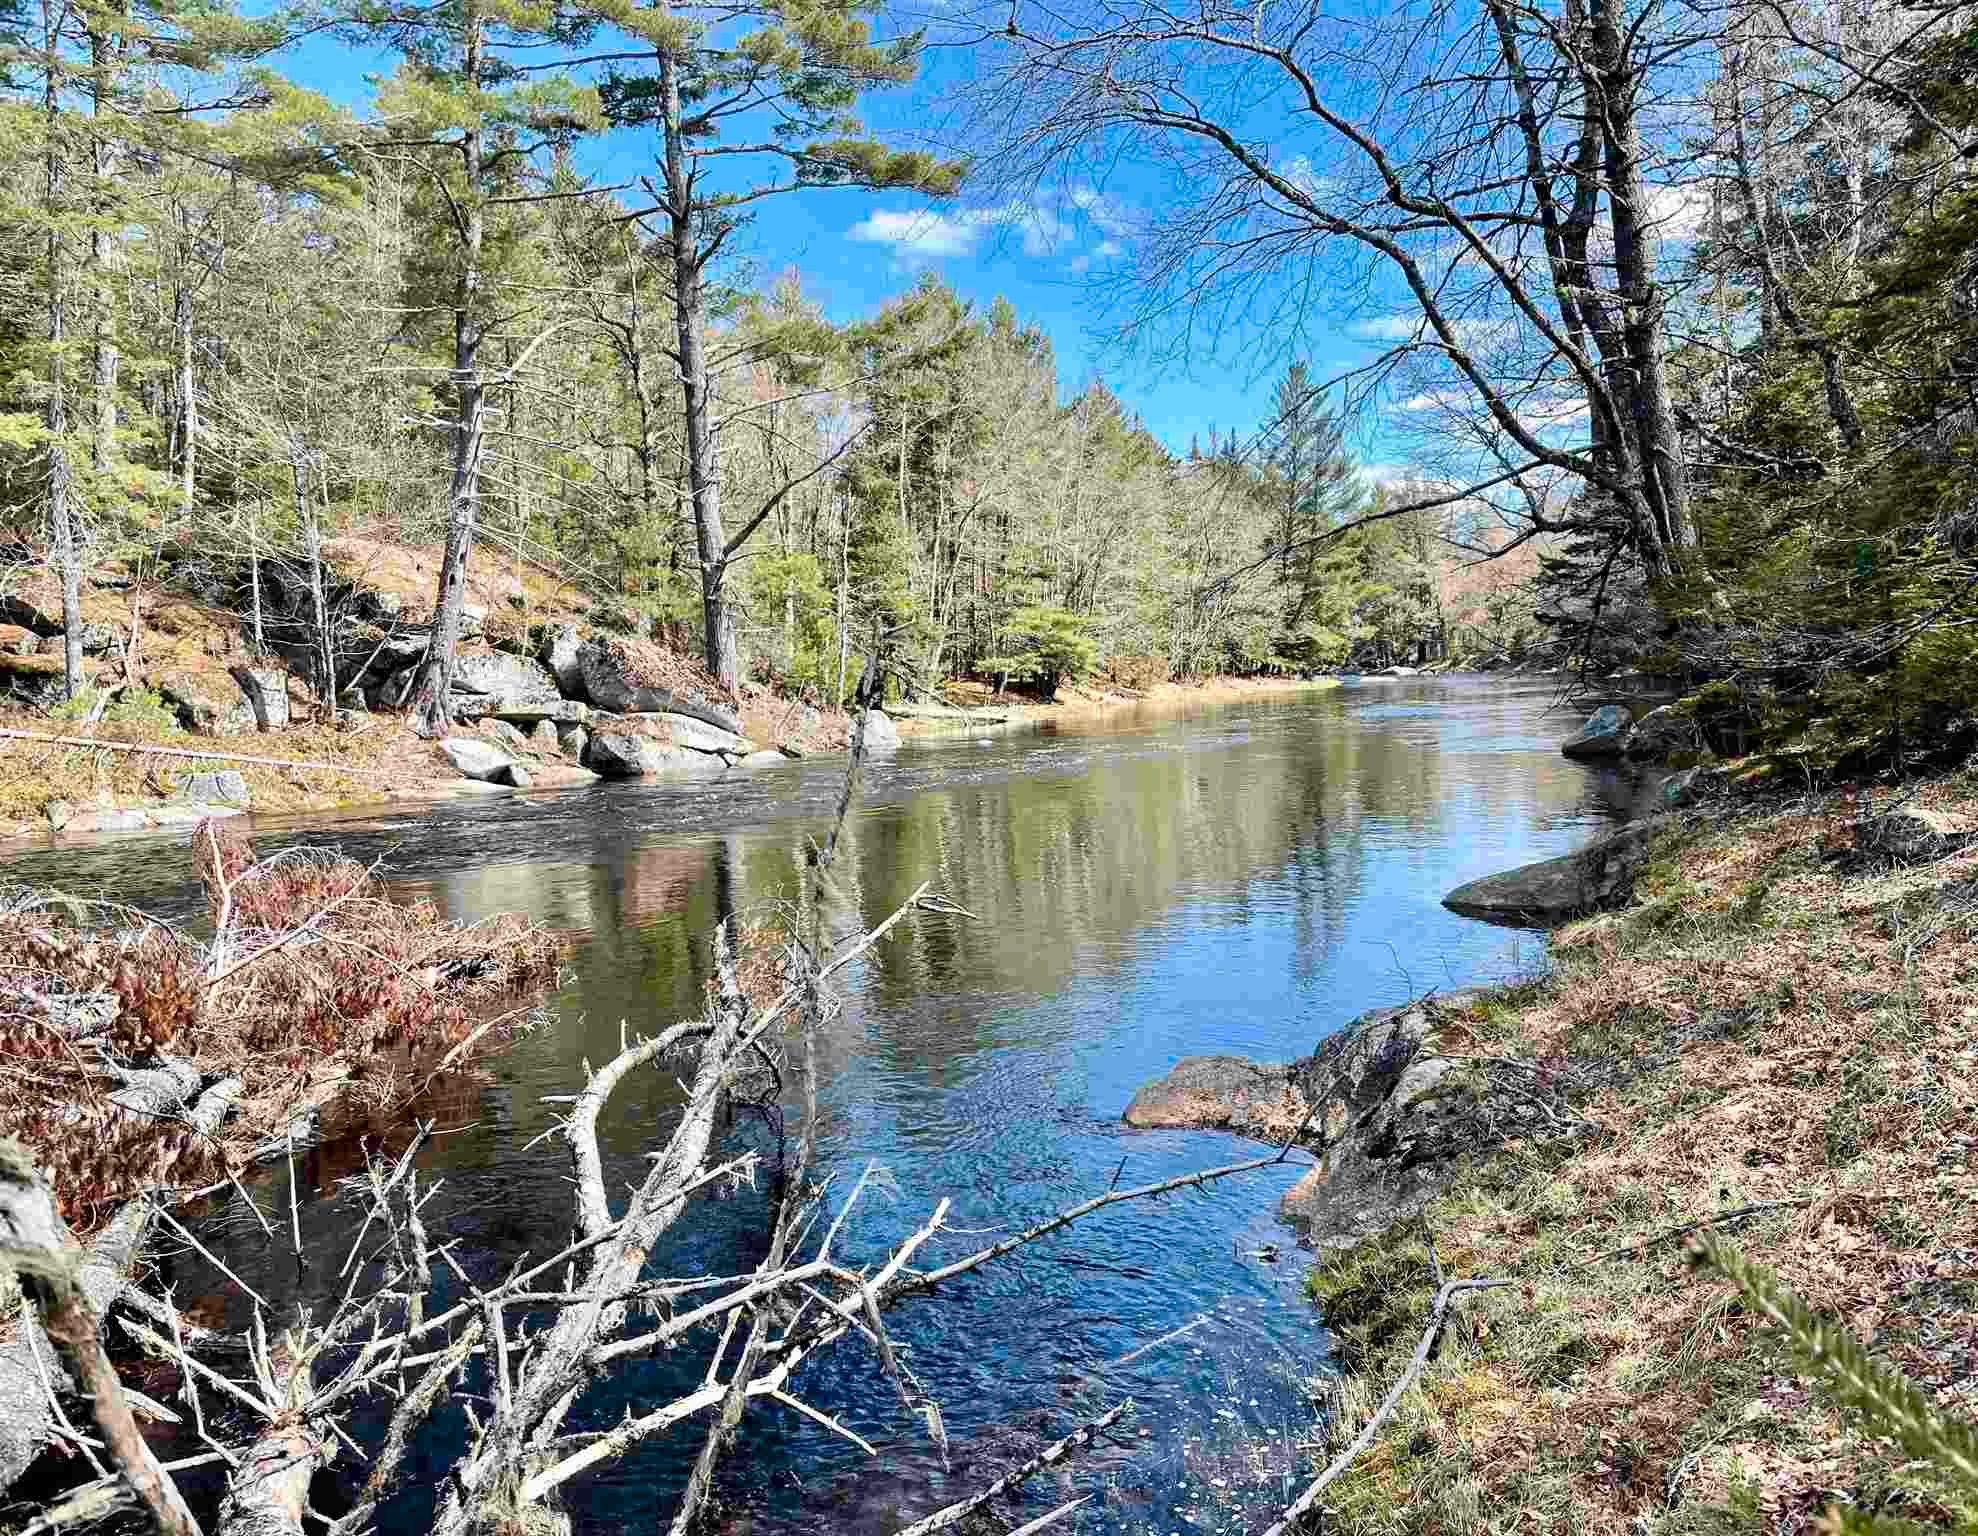 Main Photo: Lot VH-1 Highway 10 in Meisners Section: 405-Lunenburg County Vacant Land for sale (South Shore)  : MLS®# 202111350